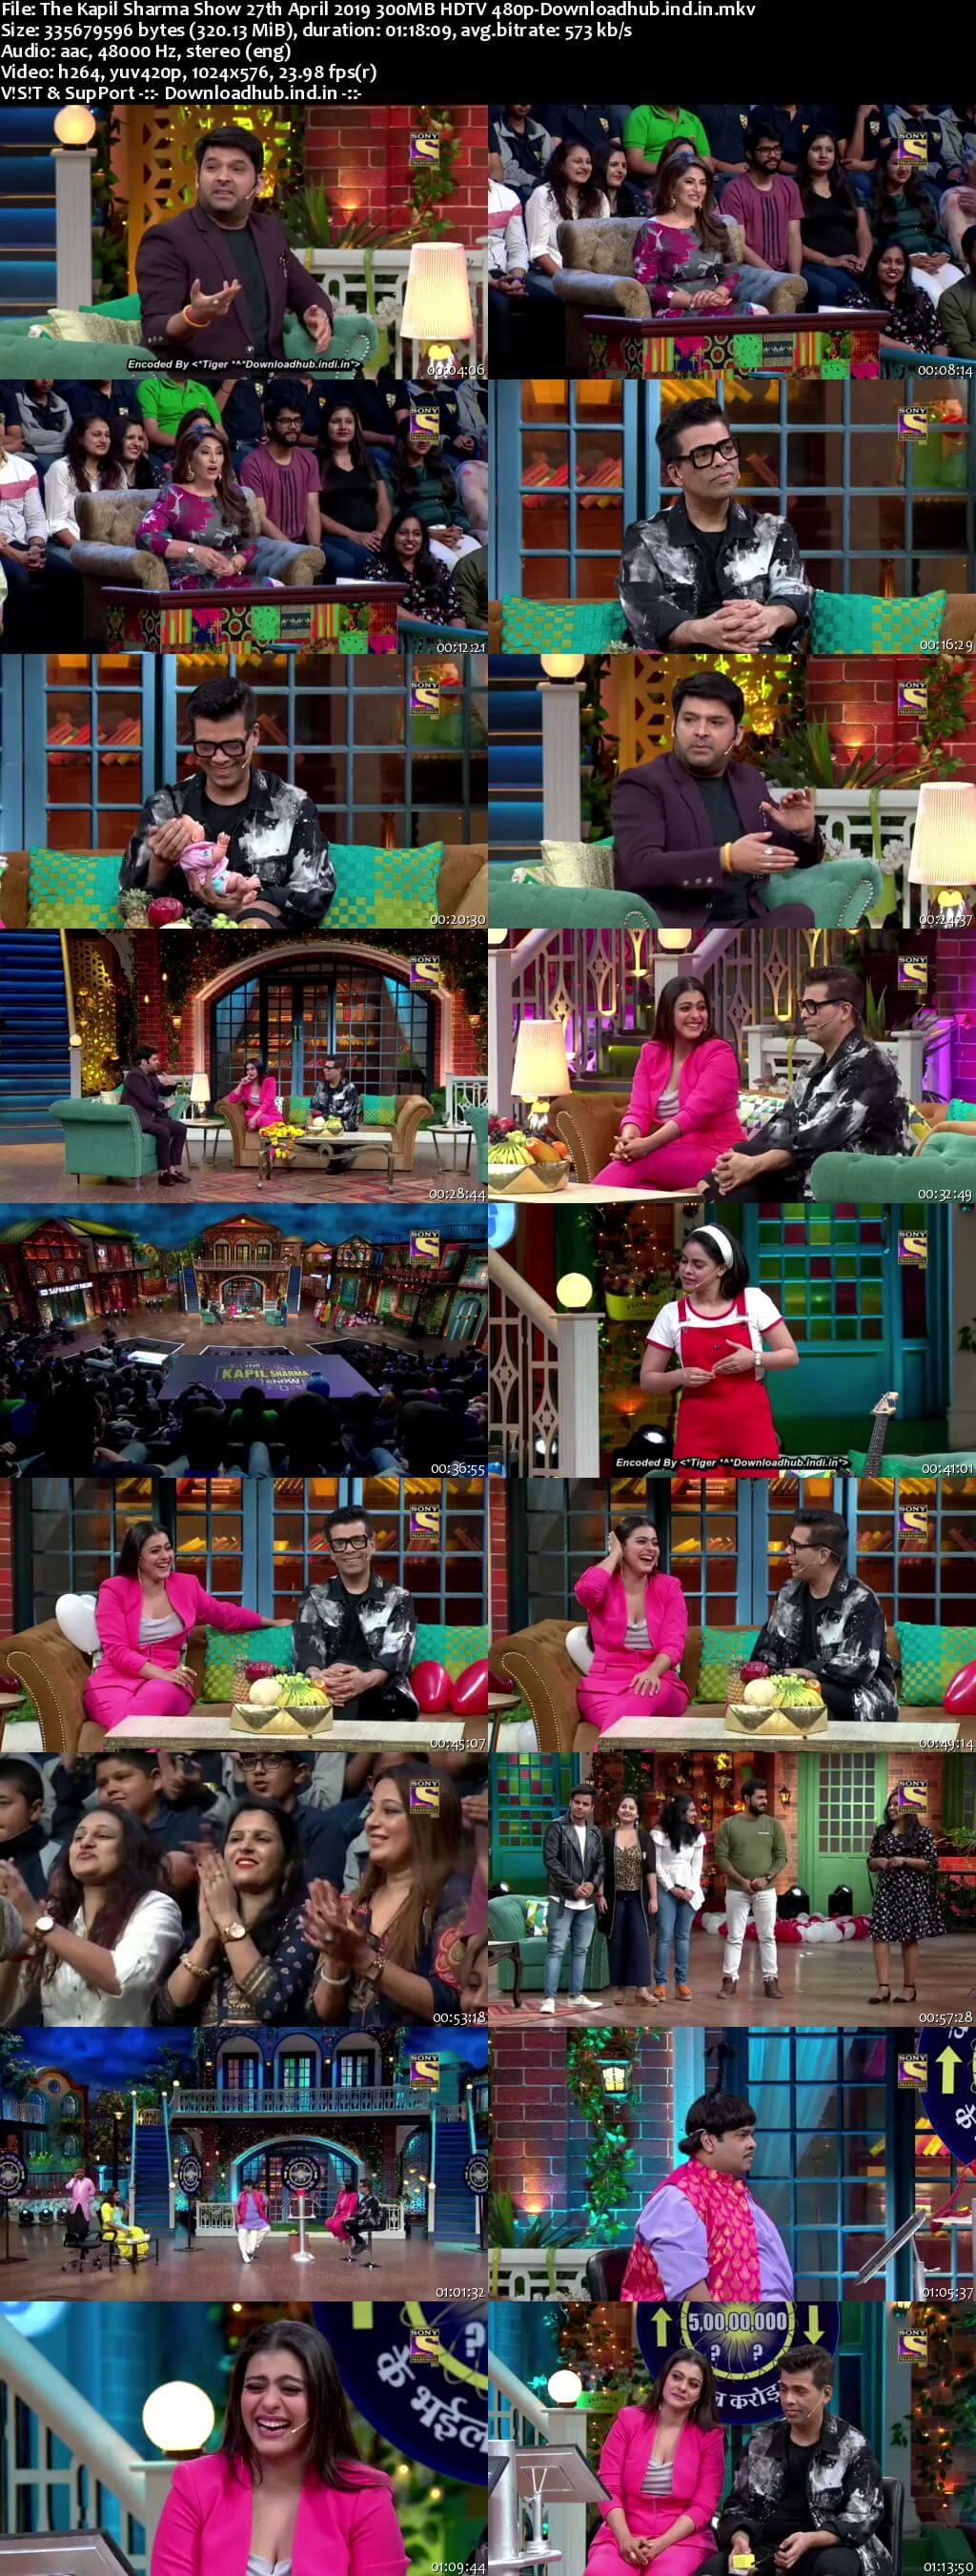 The Kapil Sharma Show 27 April 2019 Episode 35 HDTV 480p